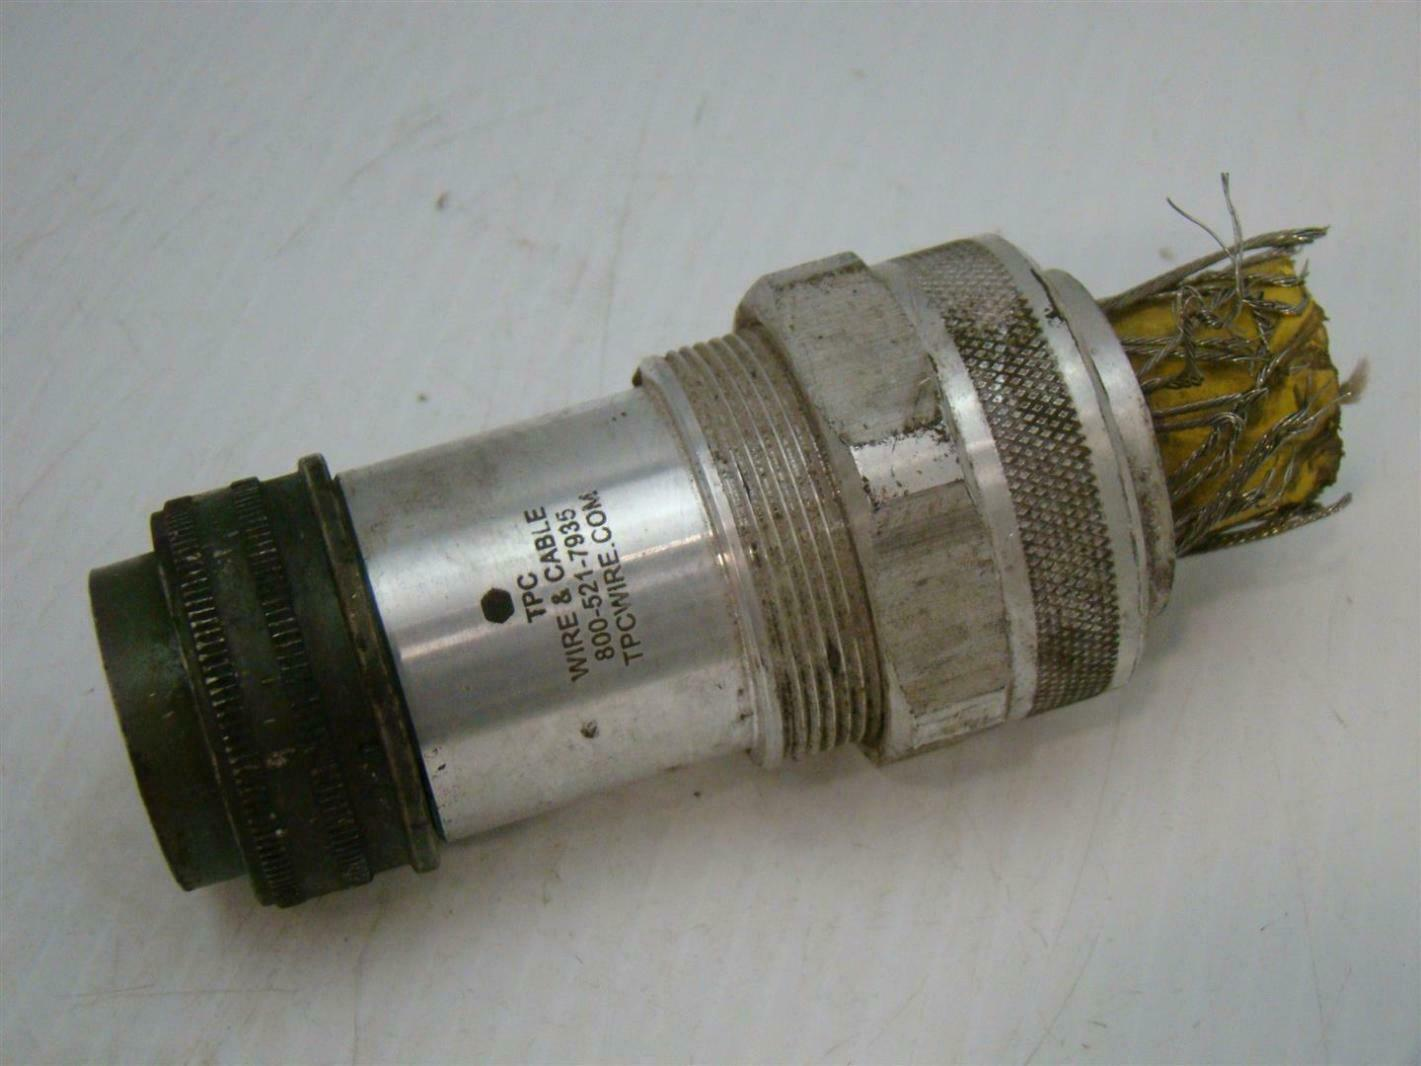 Awesome Tpc Wire And Cable 600v Gallery - Electrical and Wiring ...